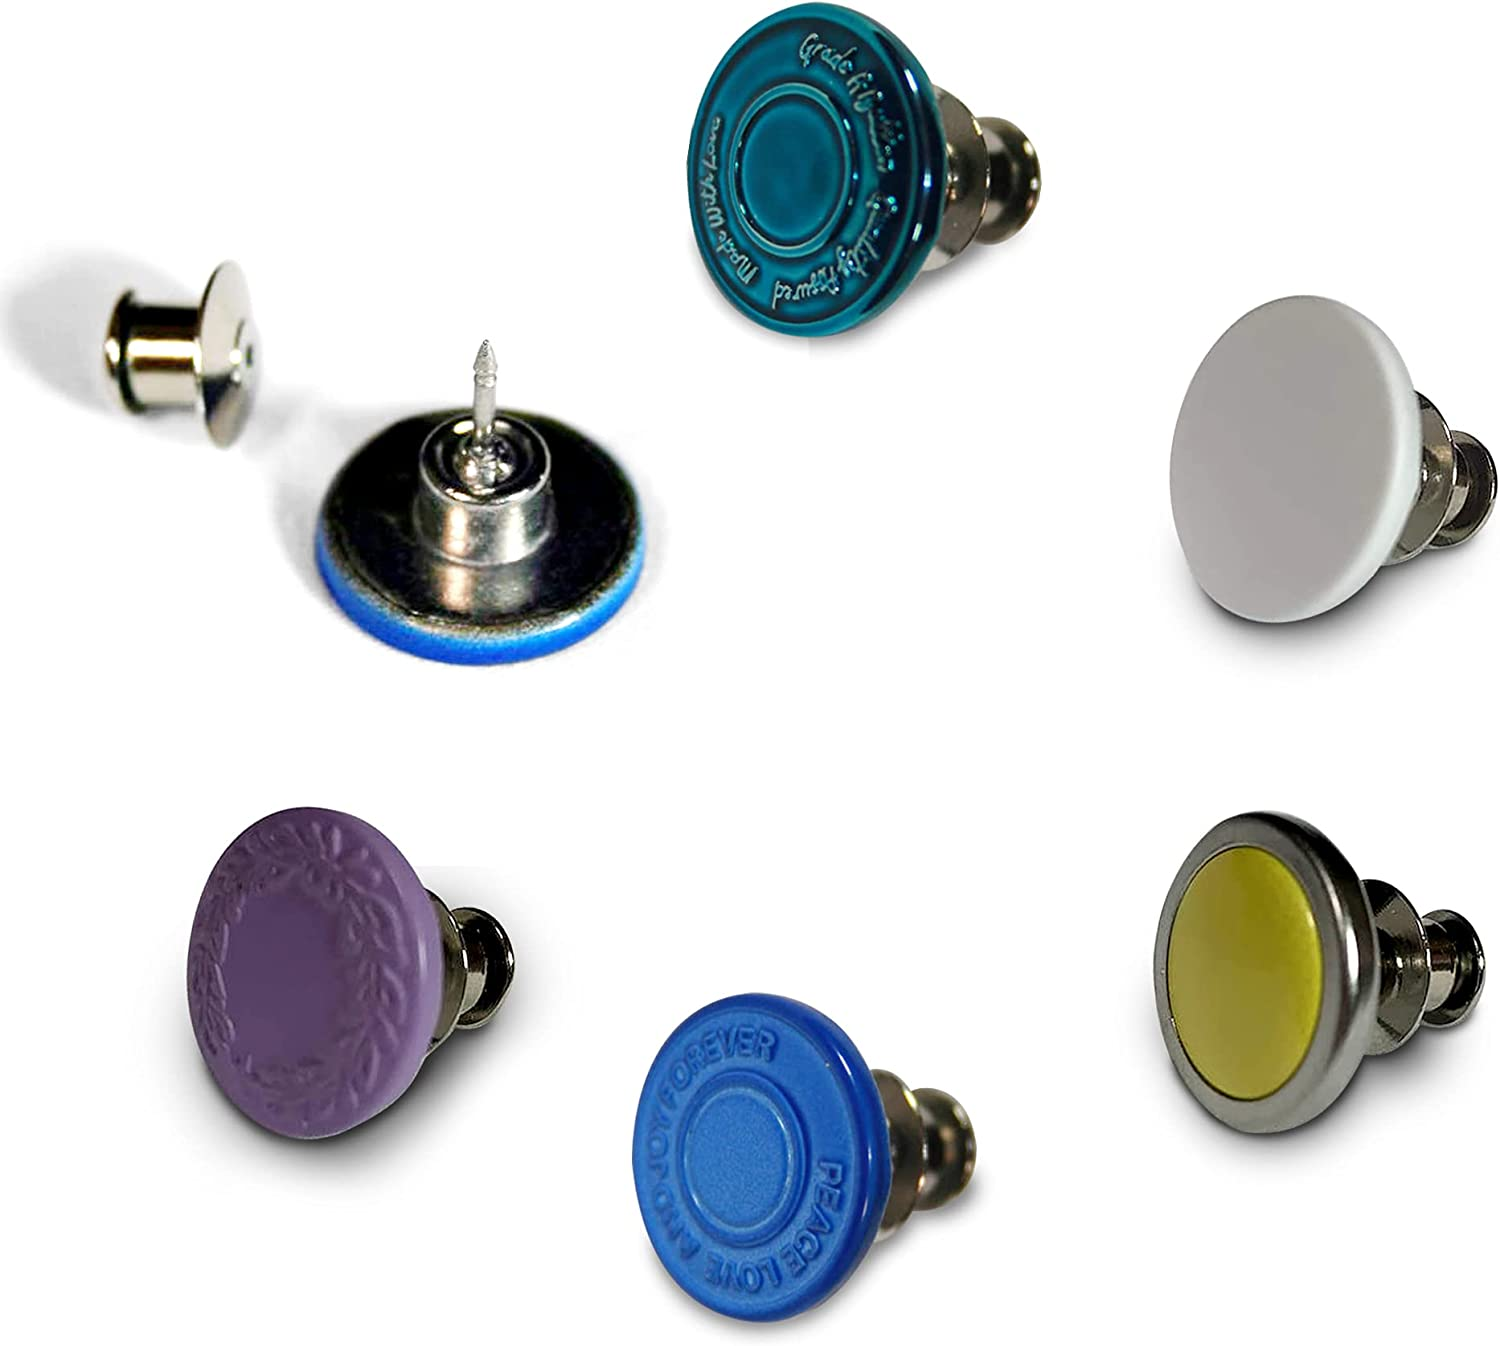 Max 80% OFF 6 Set Colored Button Pins Adjusta Replacement for Jeans Max 86% OFF